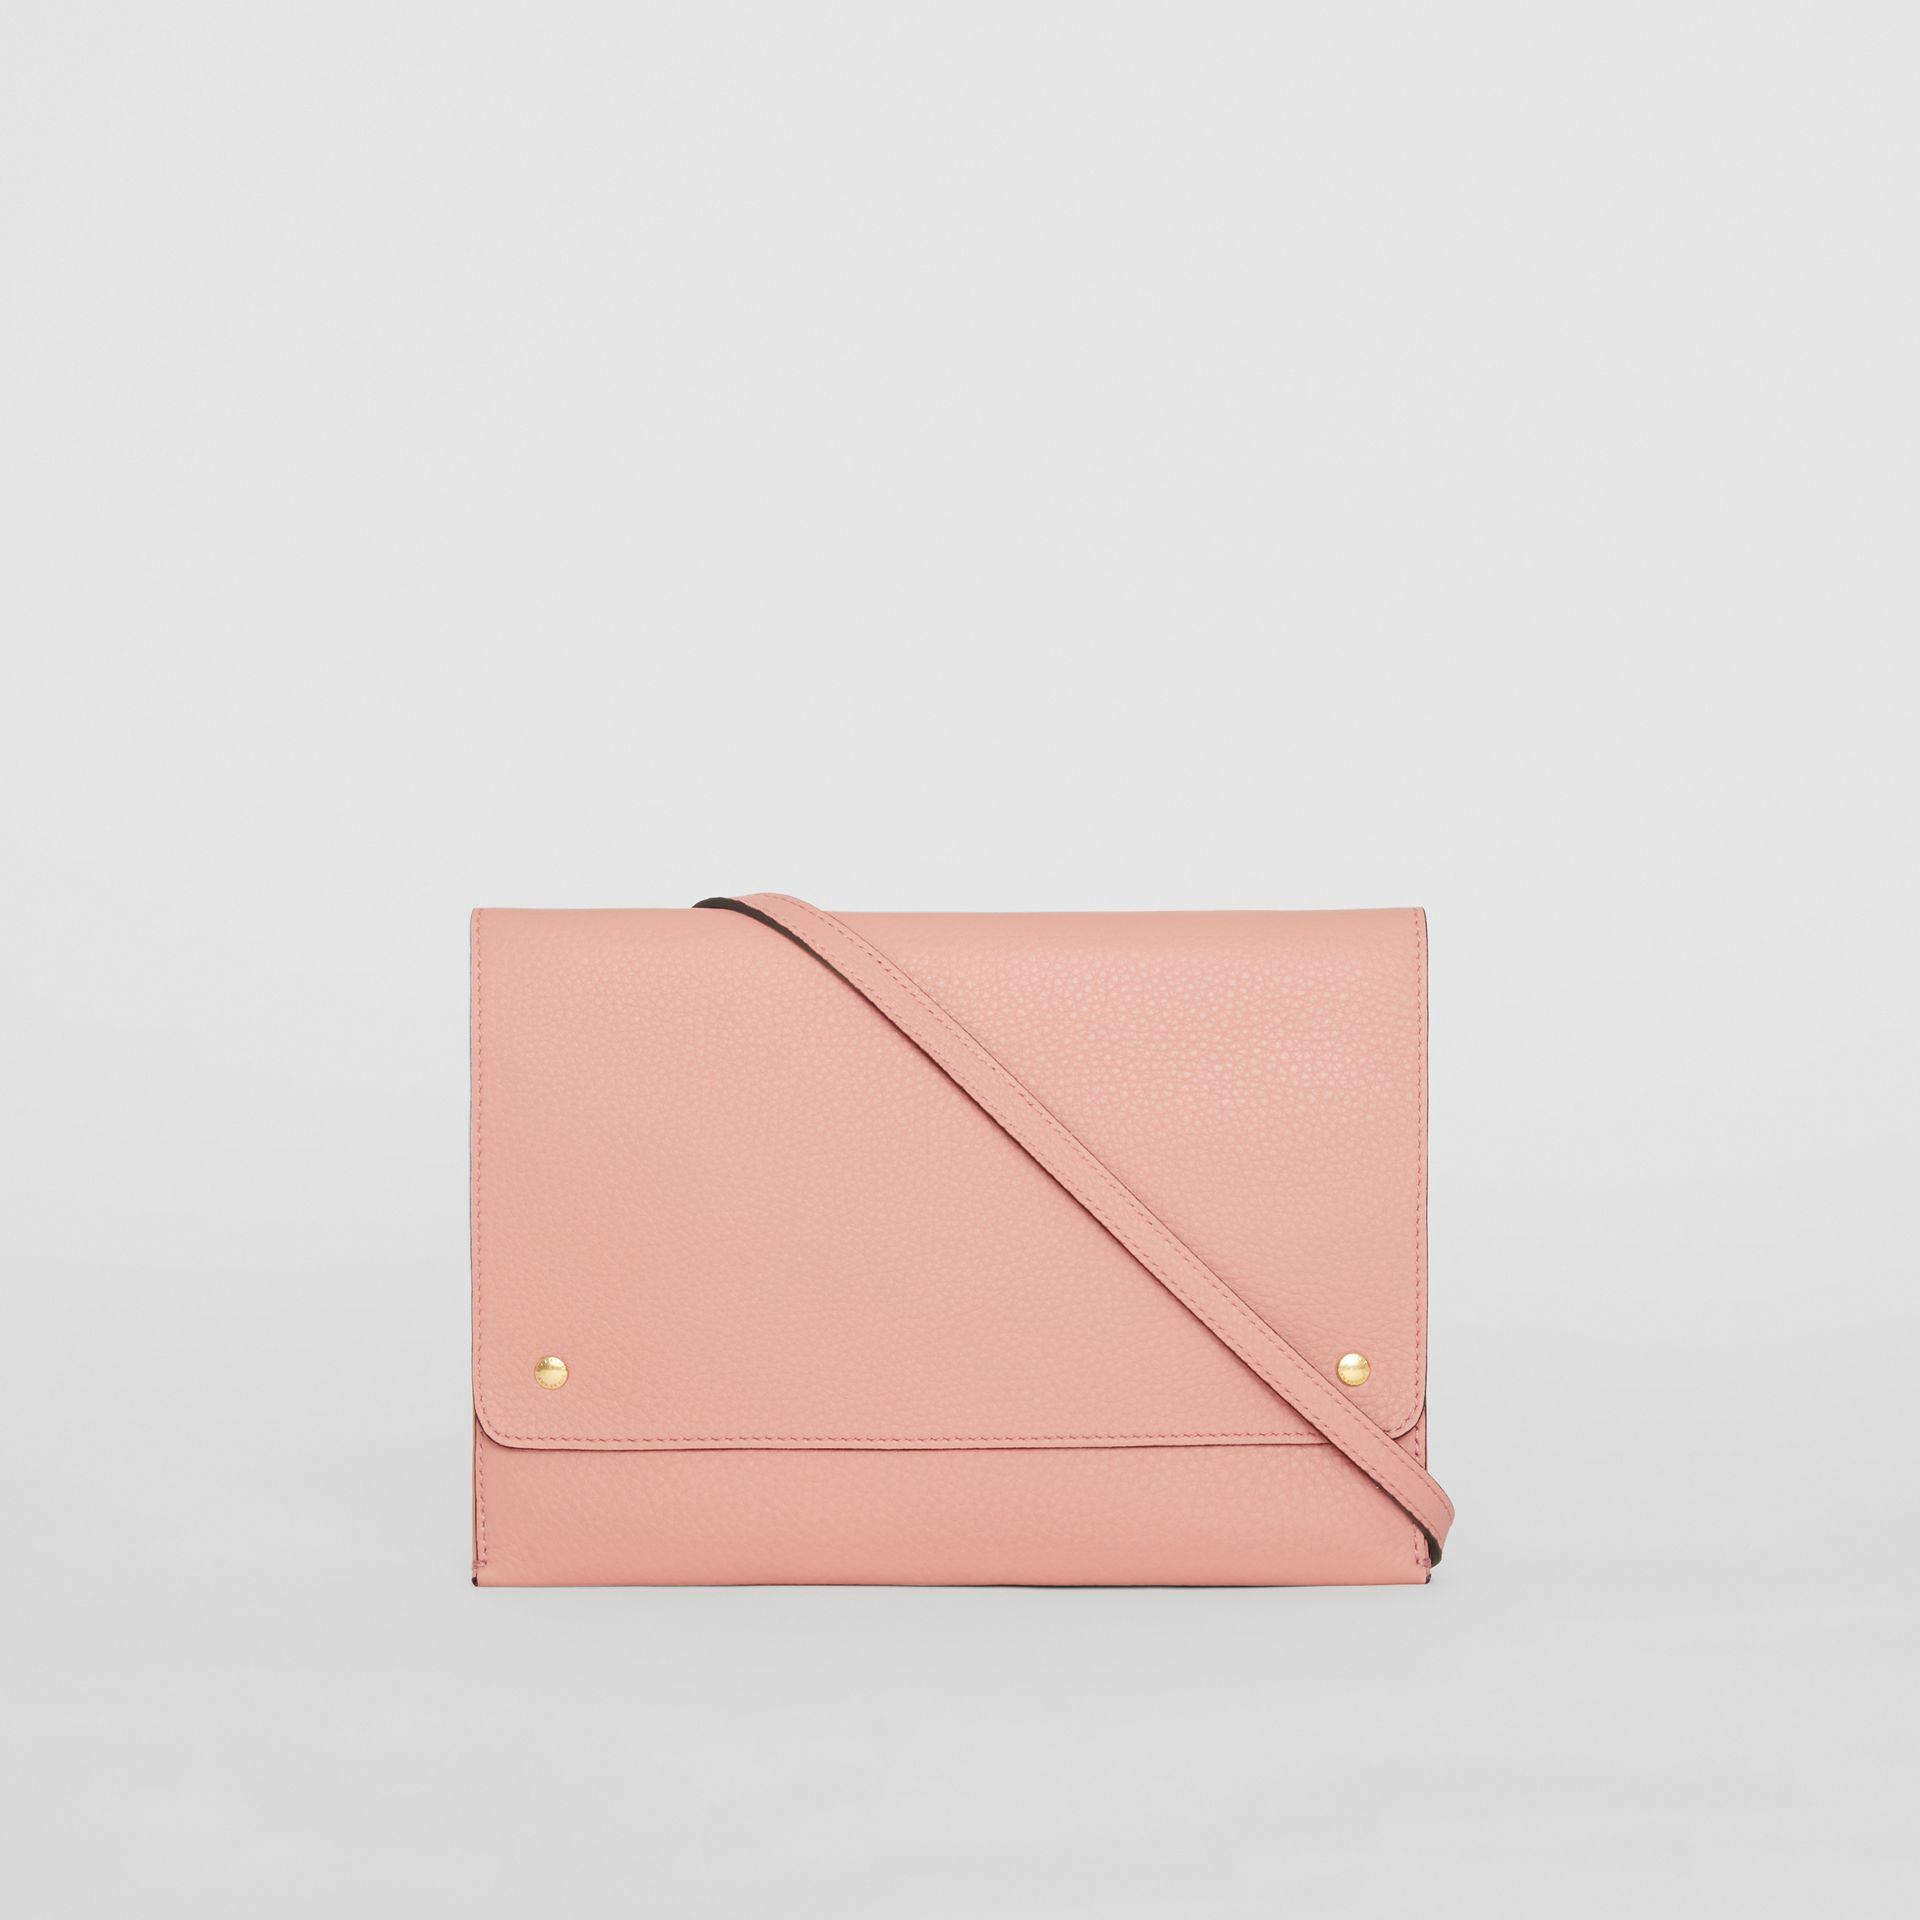 Leather Envelope Crossbody Bag in Ash Rose - Women | Burberry - gallery image 7